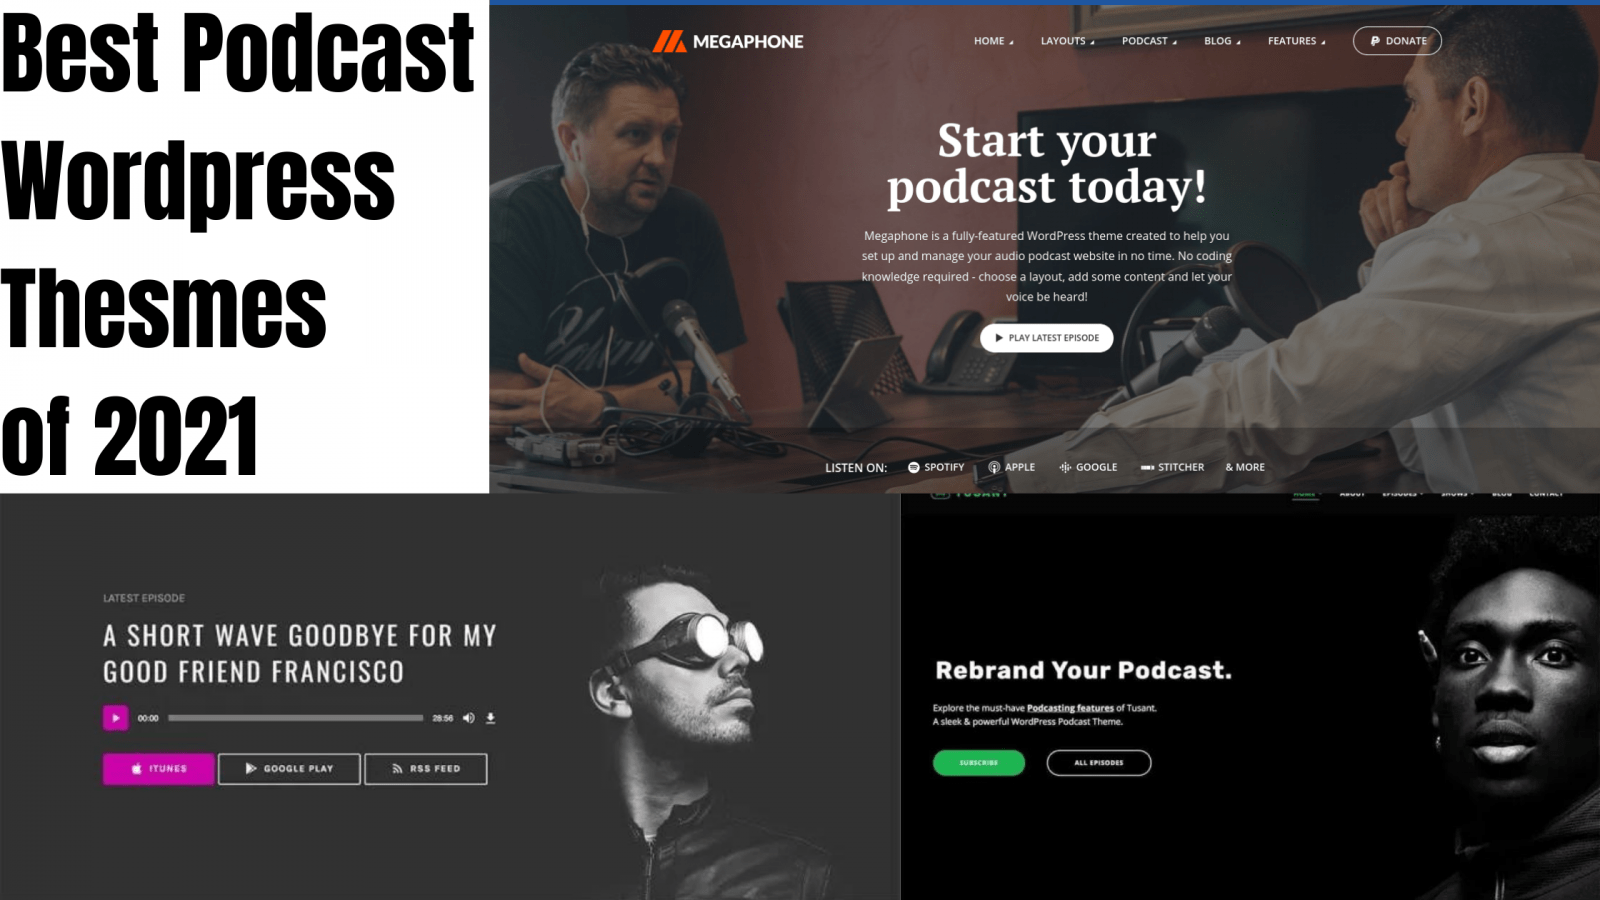 10 Best Podcast WordPress Themes Of 2021